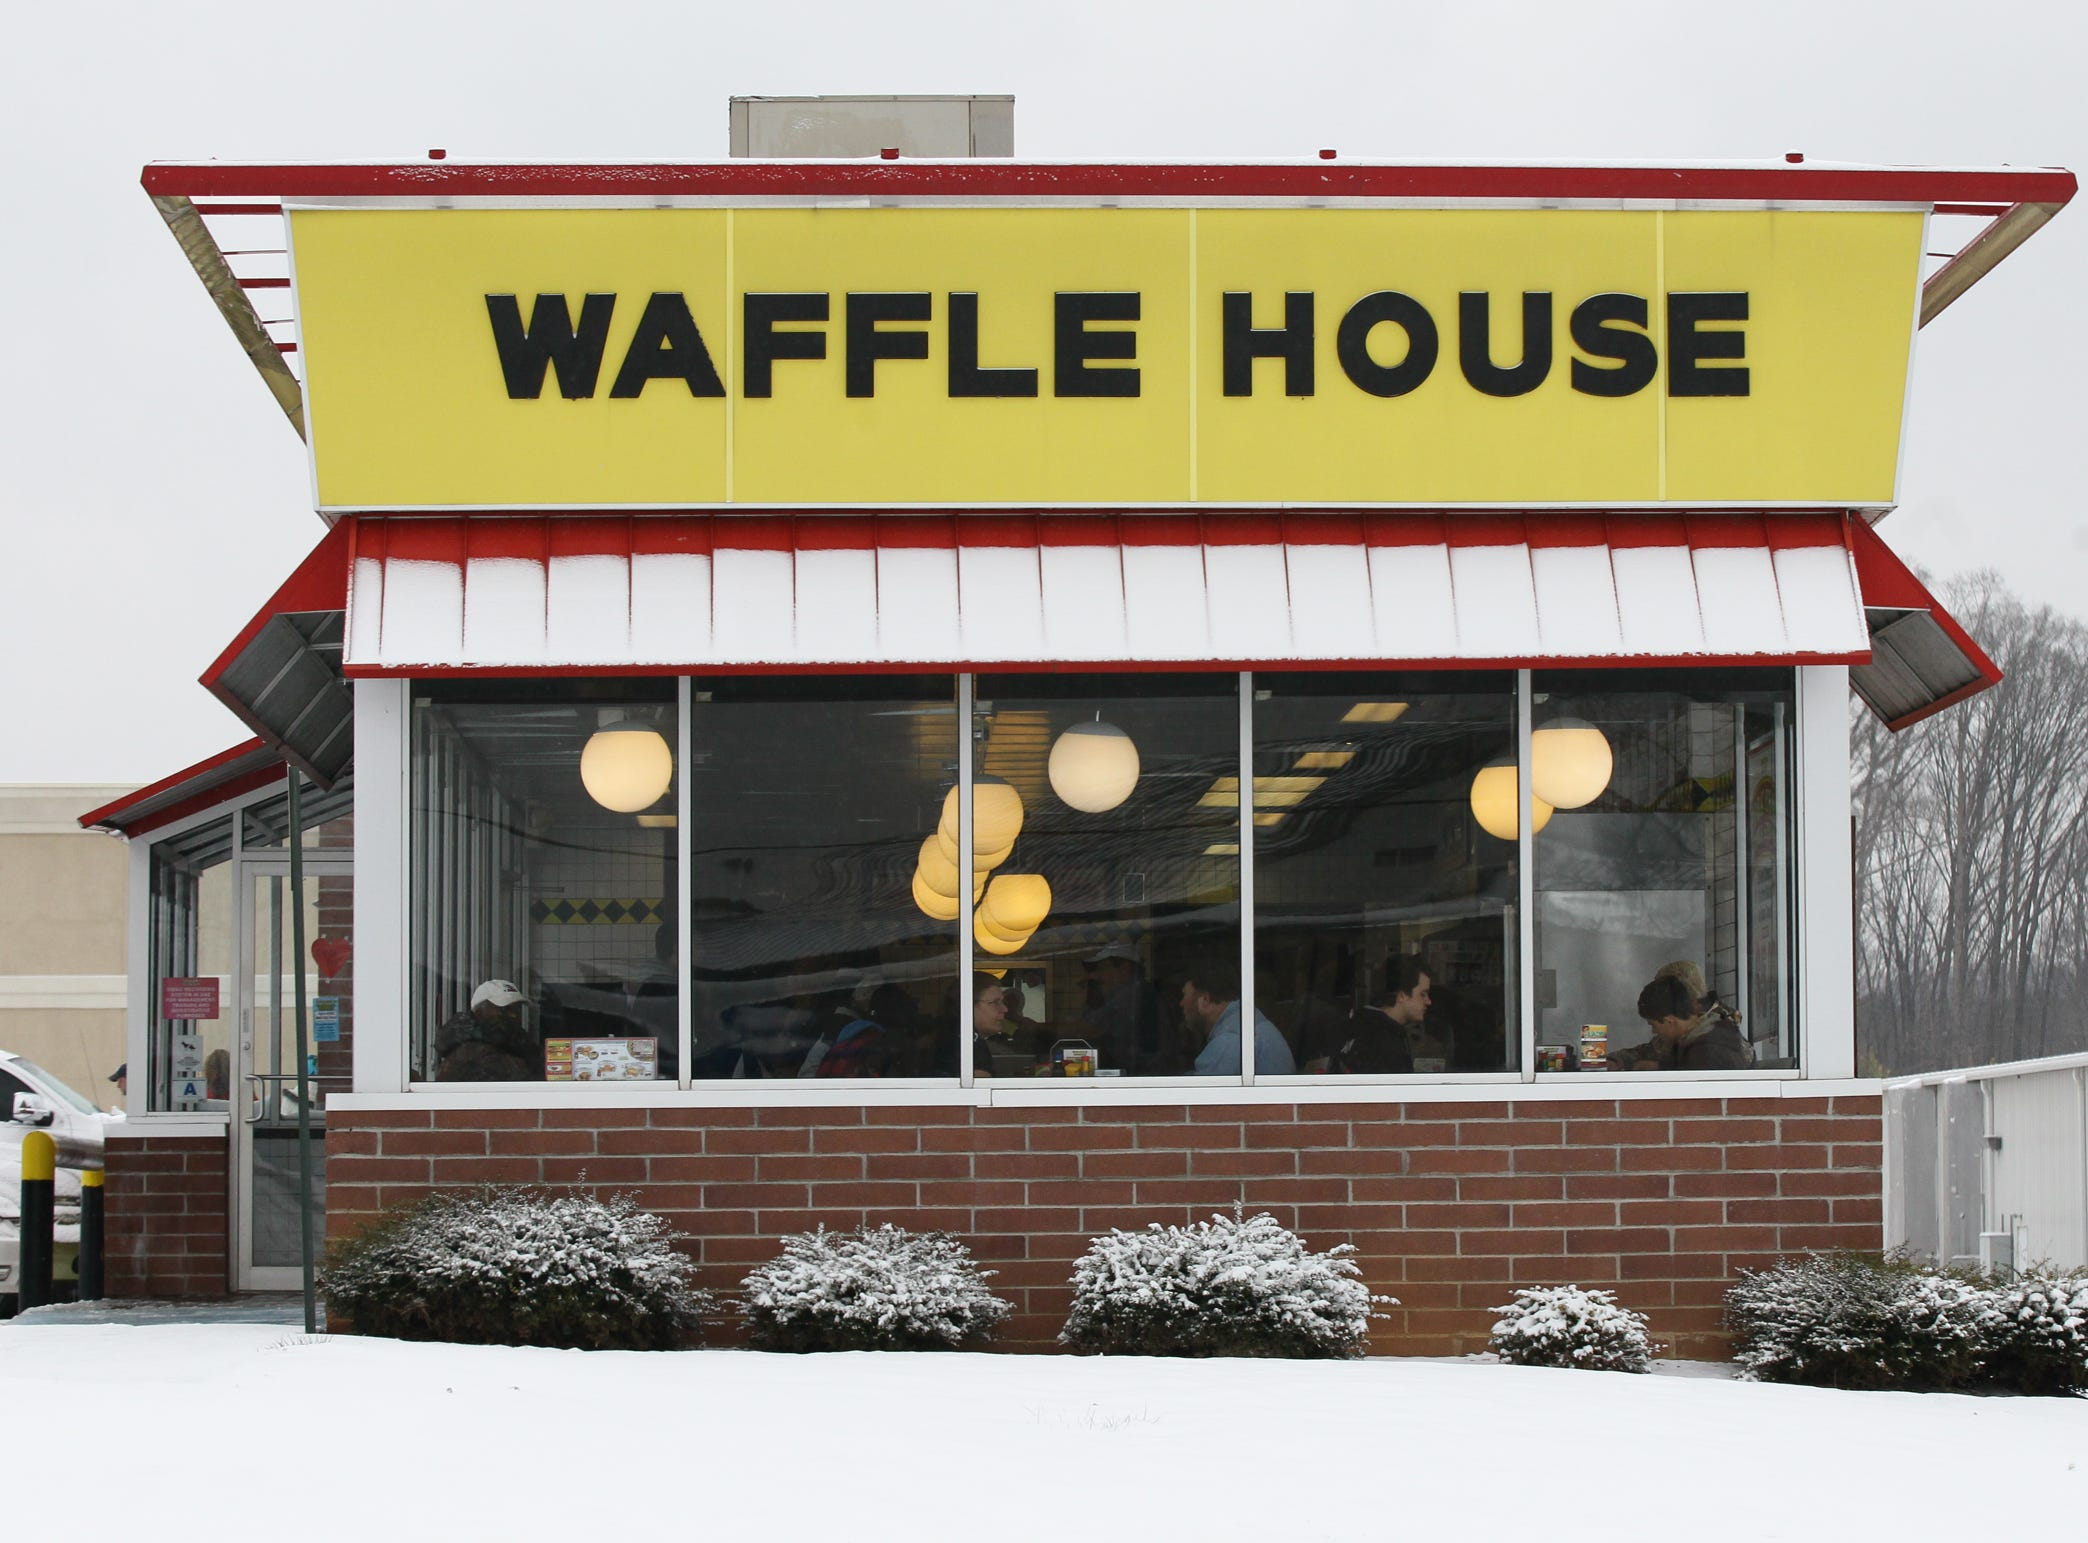 People dine in the Waffle House restaurant on Liberty Highway in Anderson during the first snow of 2014.